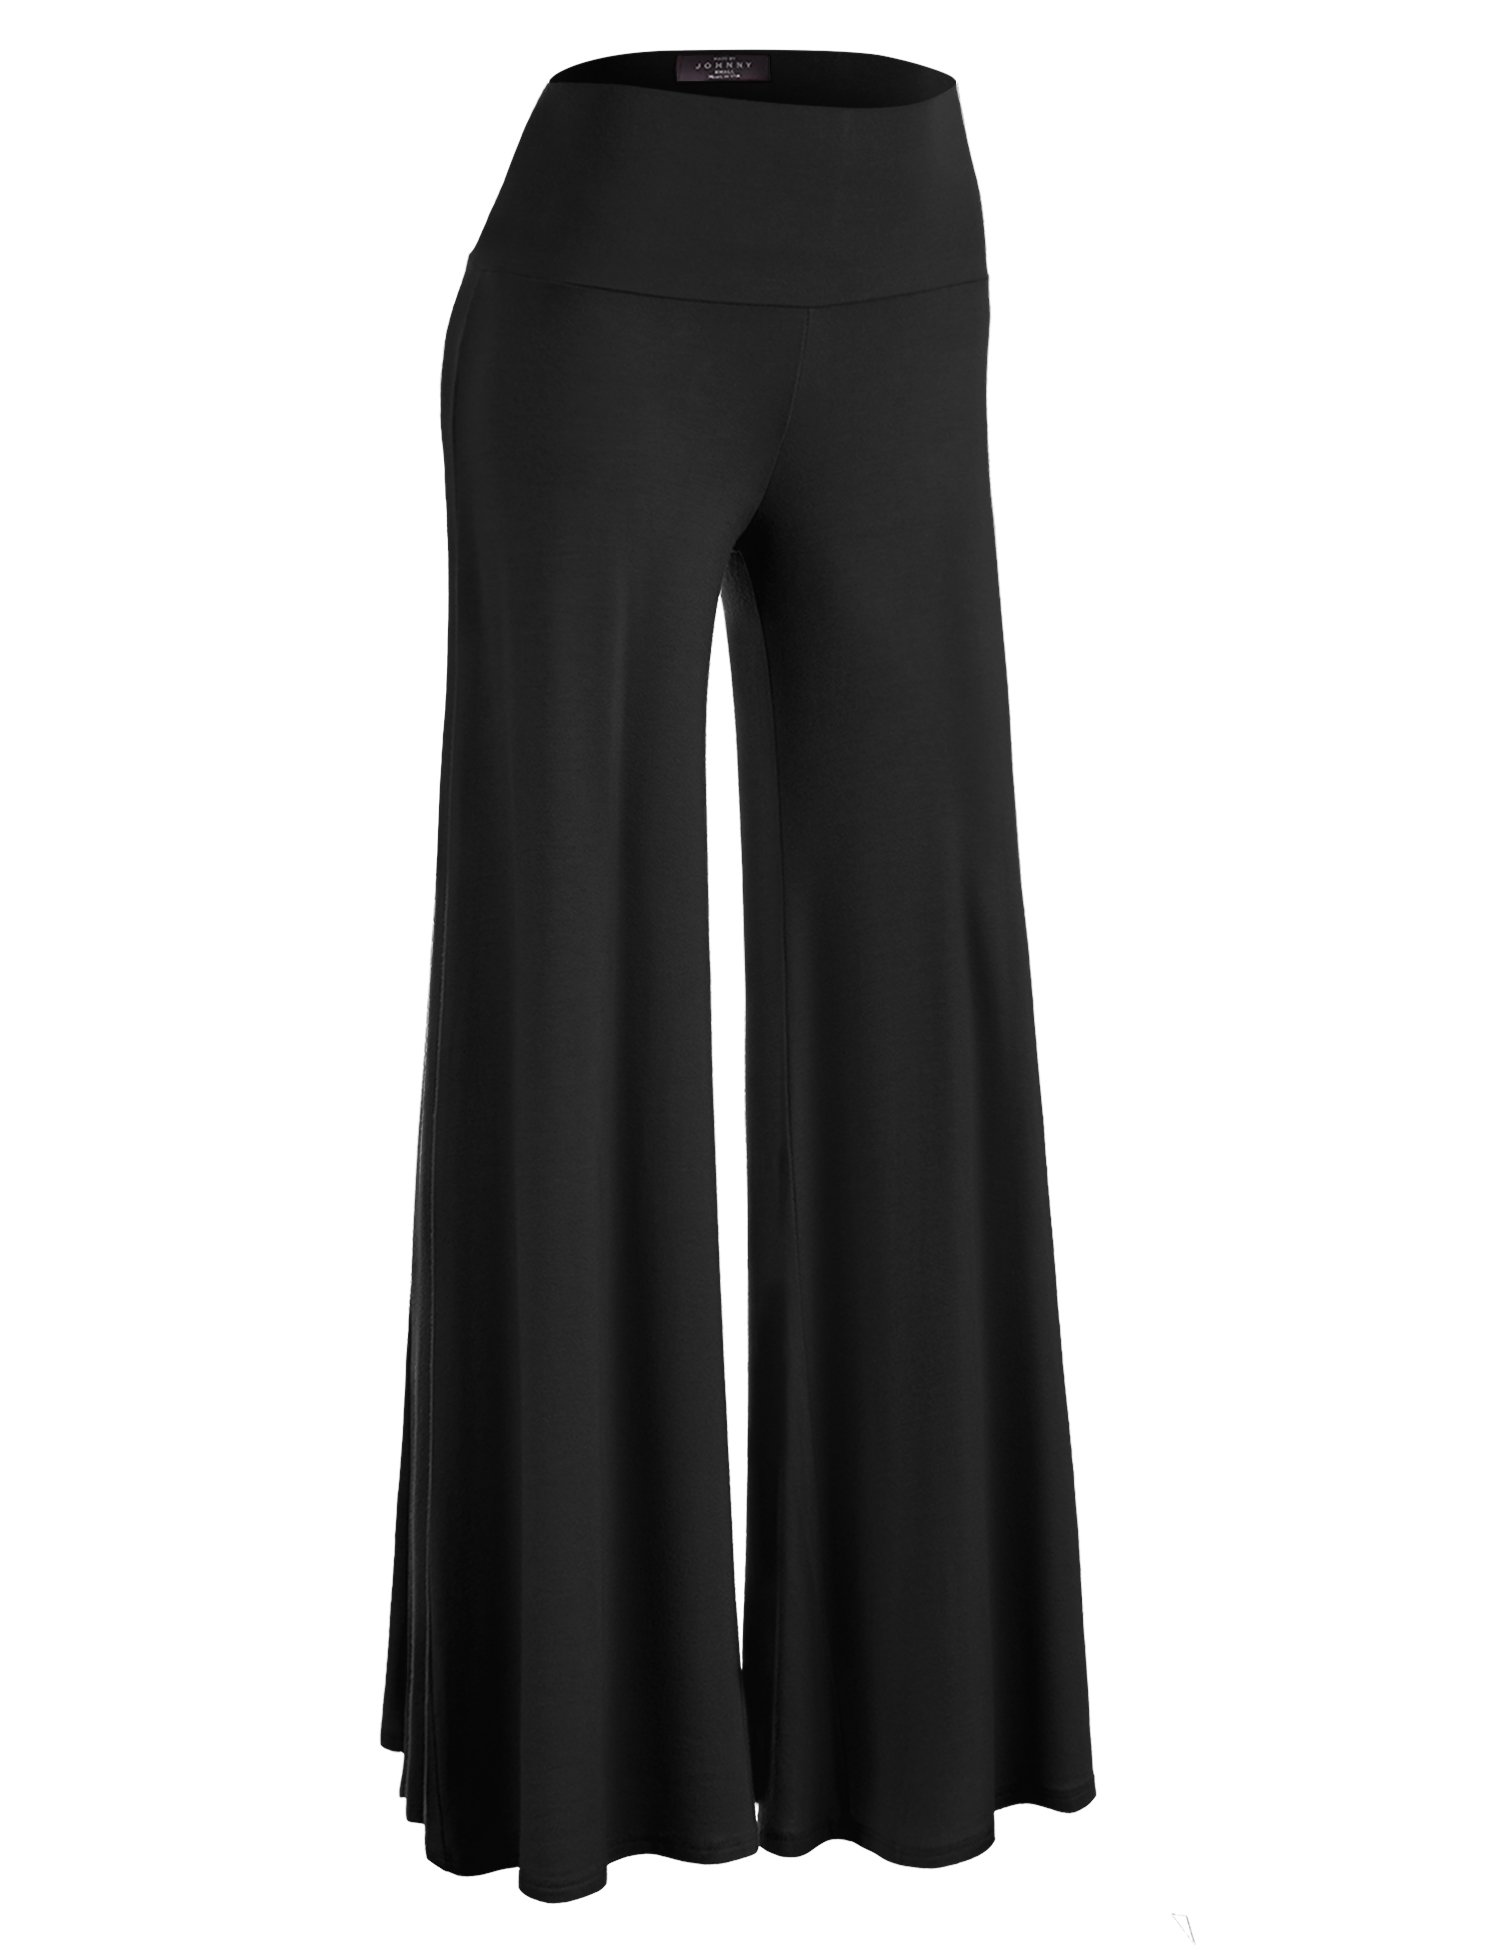 Made By Johnny WB750 Womens Chic Palazzo Lounge Pants M BLACK